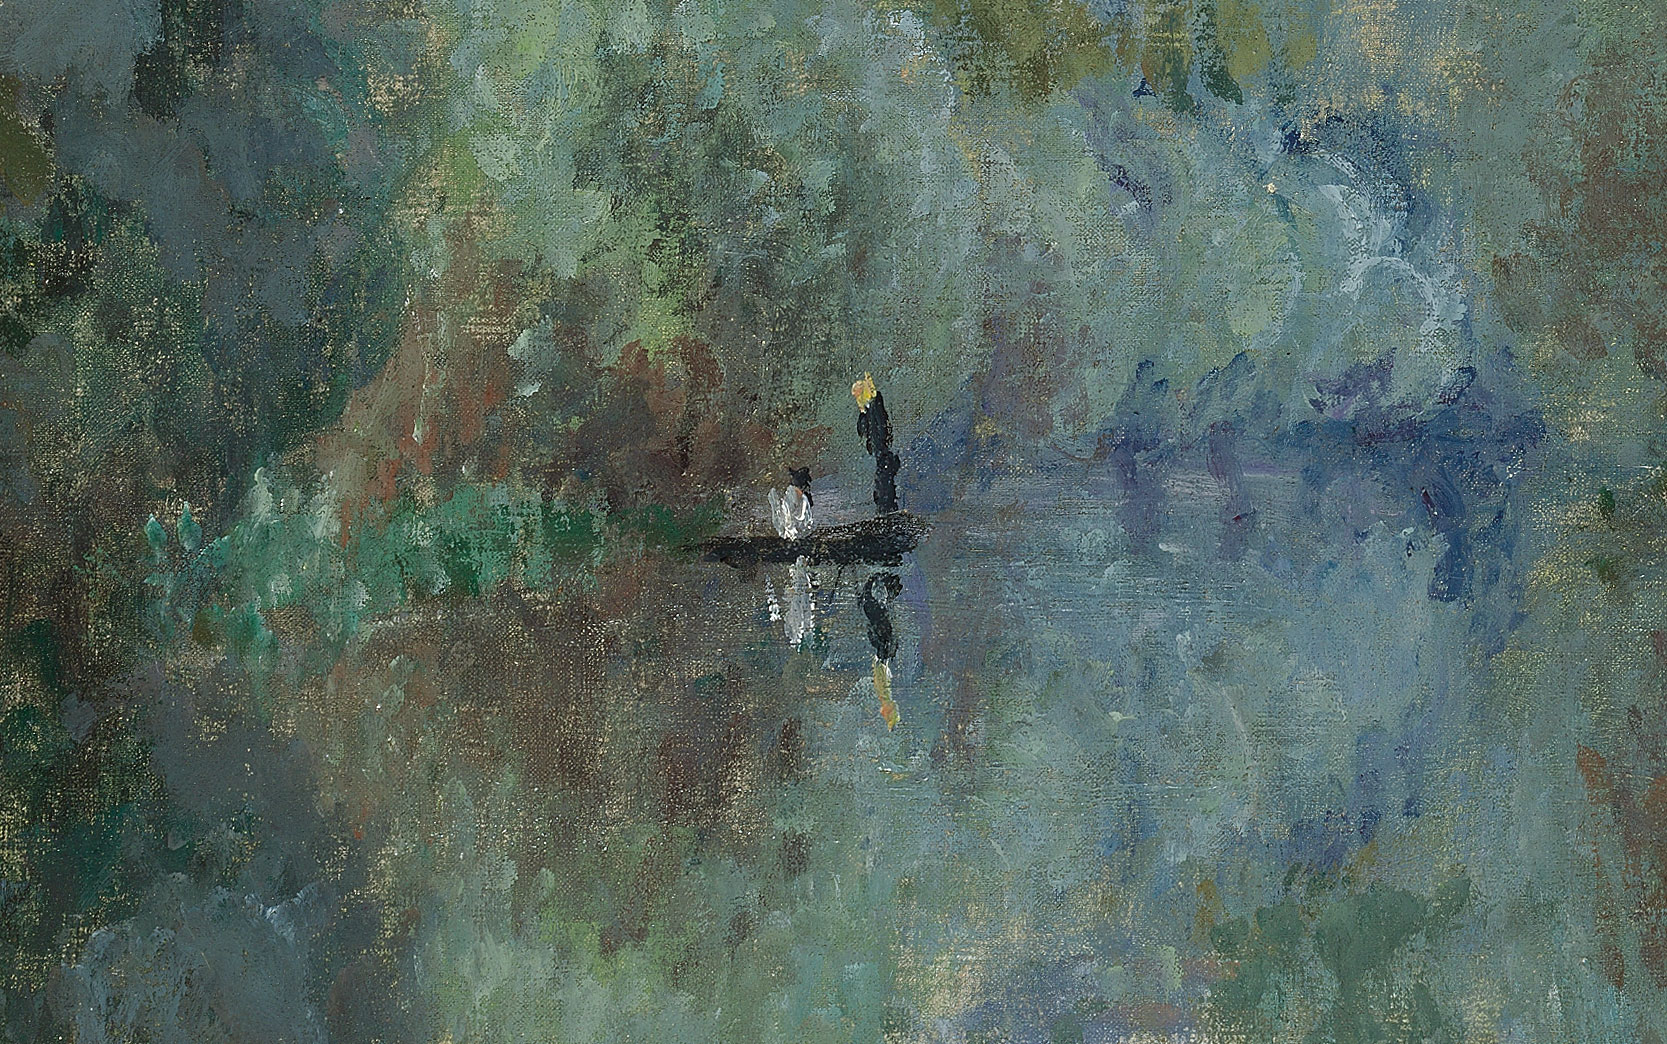 Monet, Morisot, Renoir and the birth of Impressionism